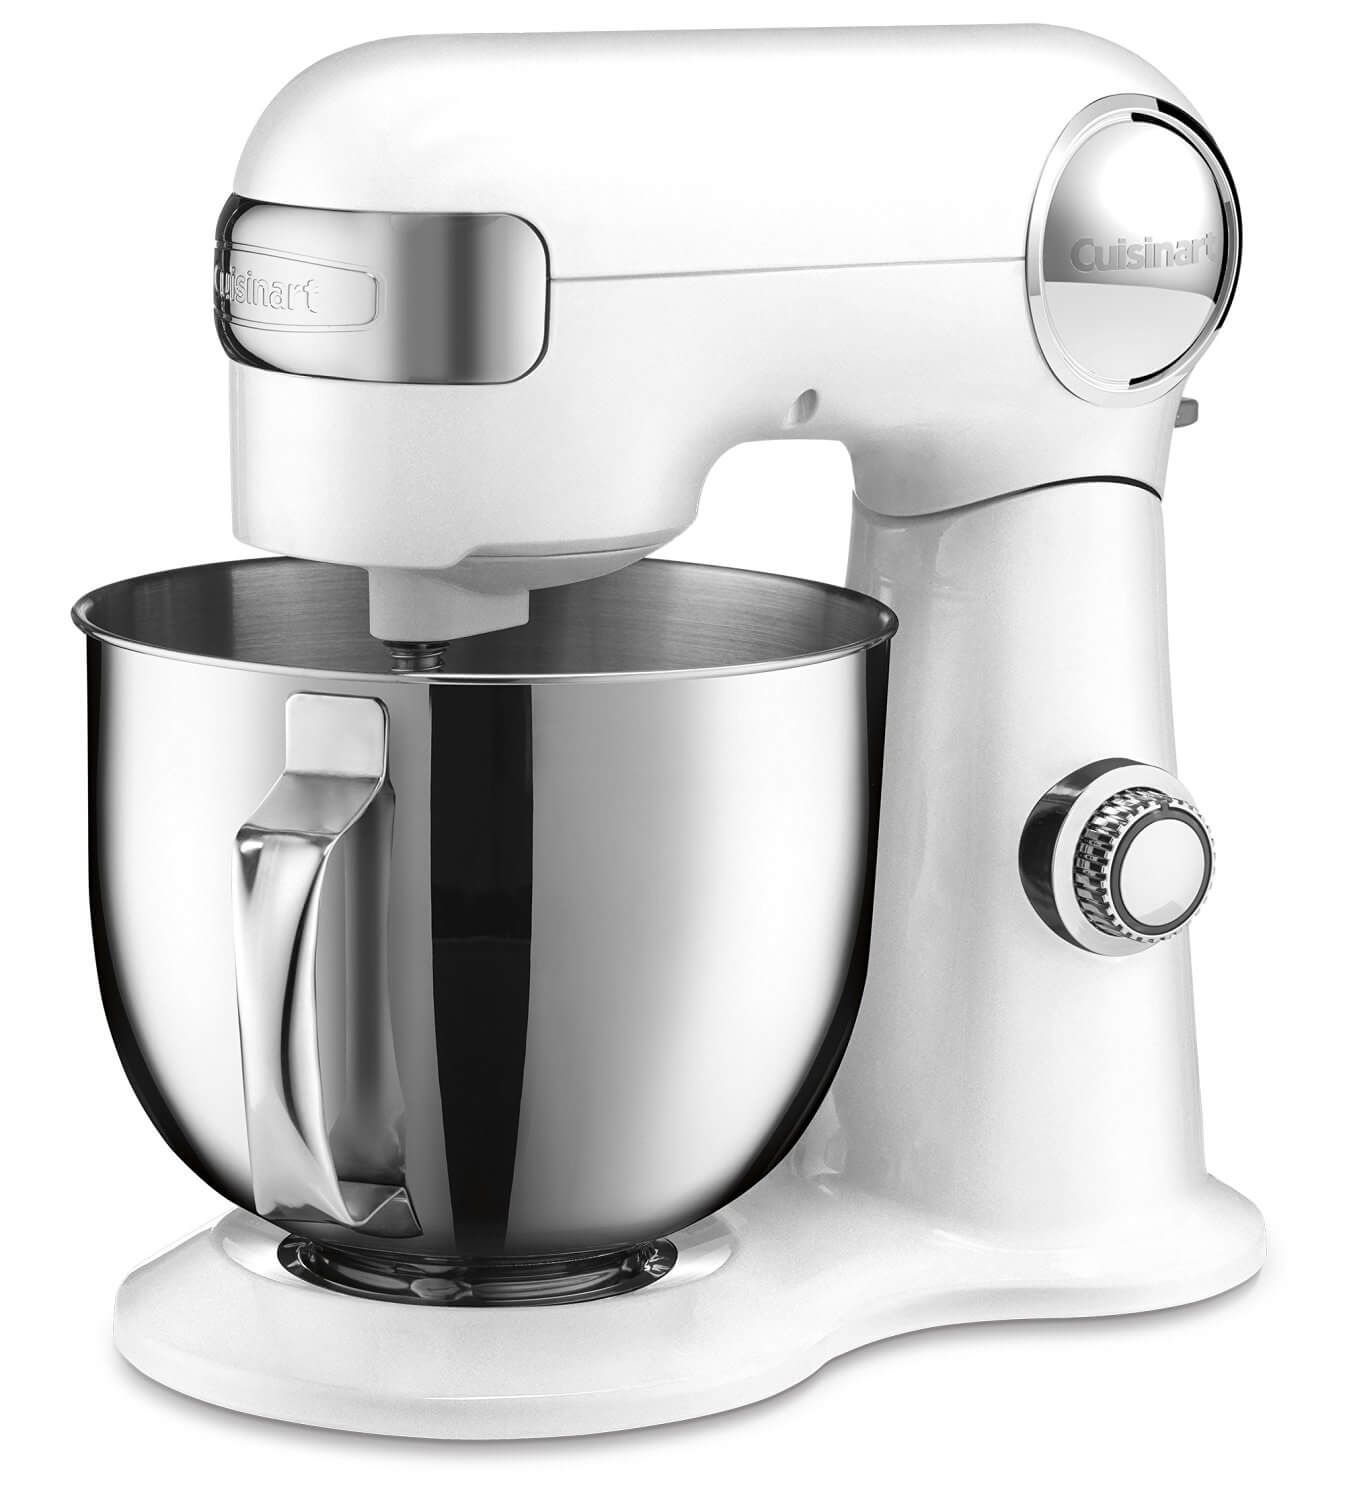 cuisinart sm 50 5 5 quart stand mixer review giveaway stand